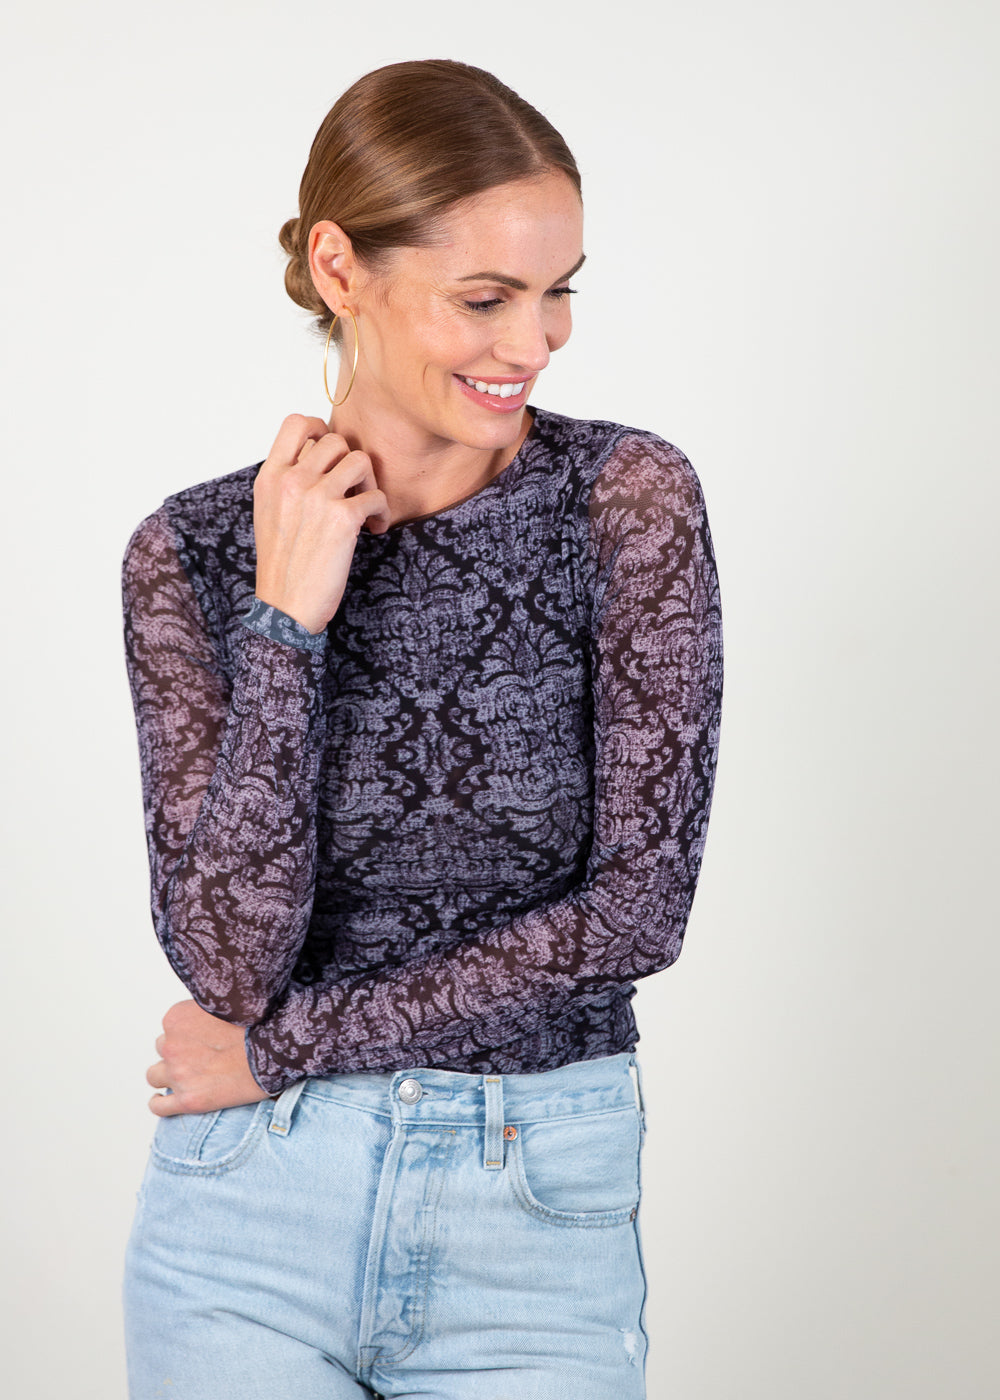 Black Baroque - Florence Double Sheer Top